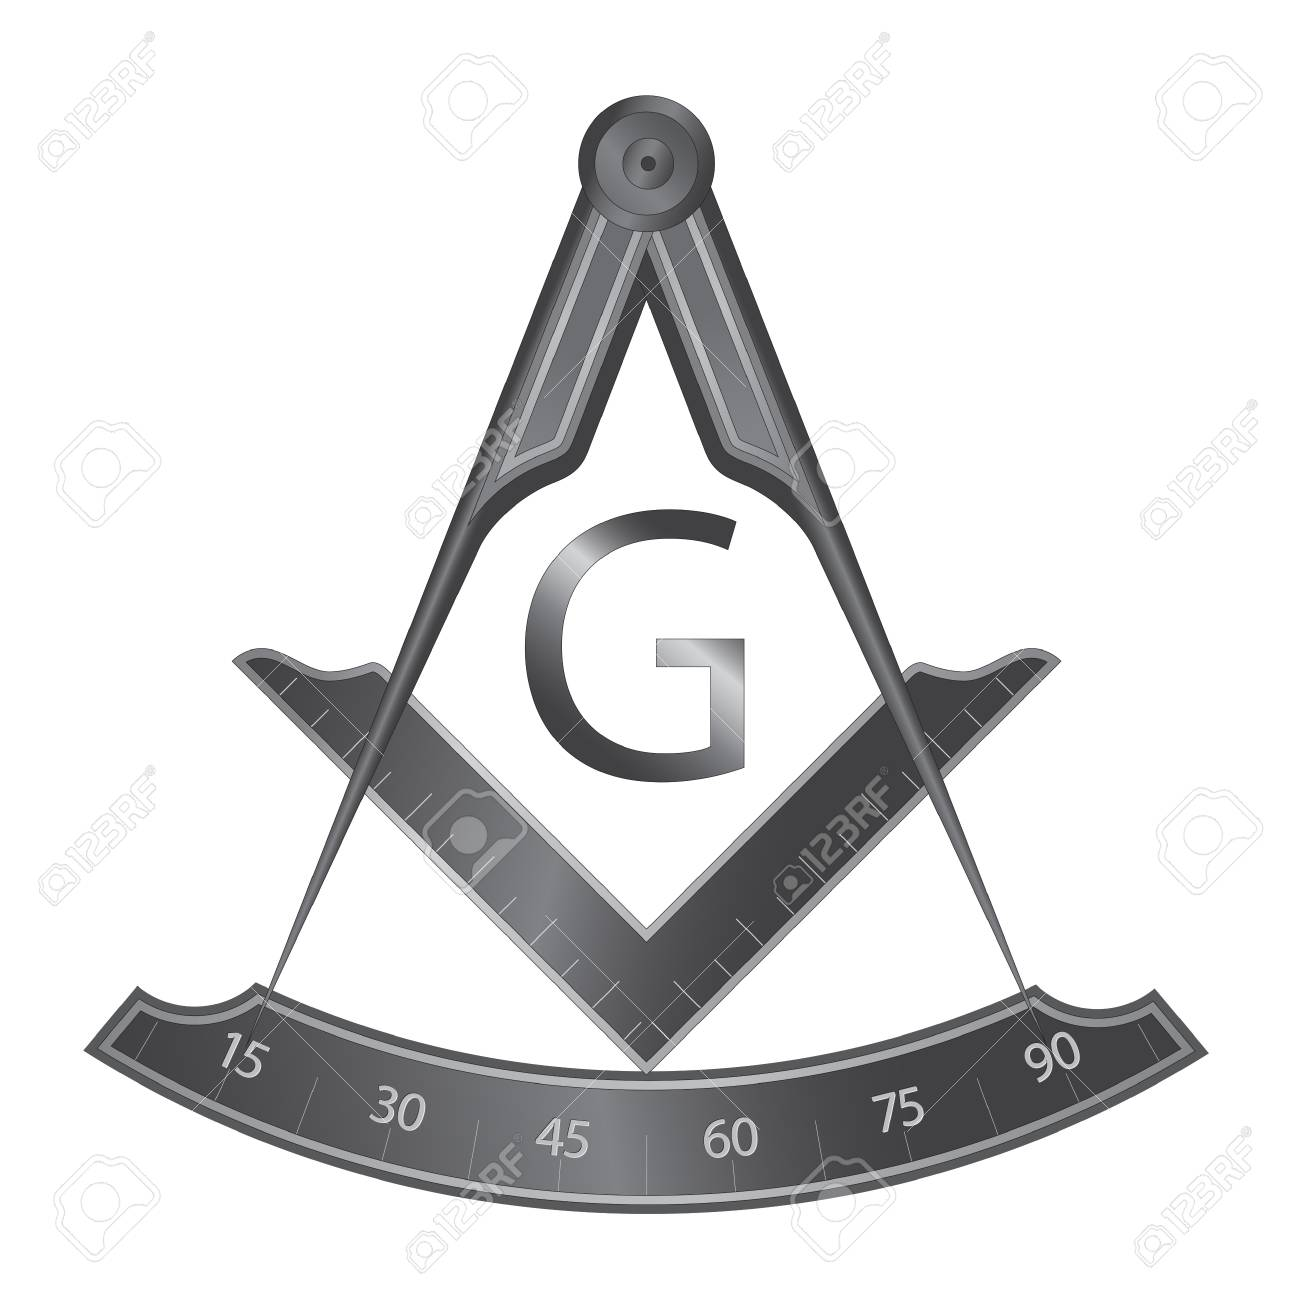 Black iron masonic square and compass symbol, with G letter